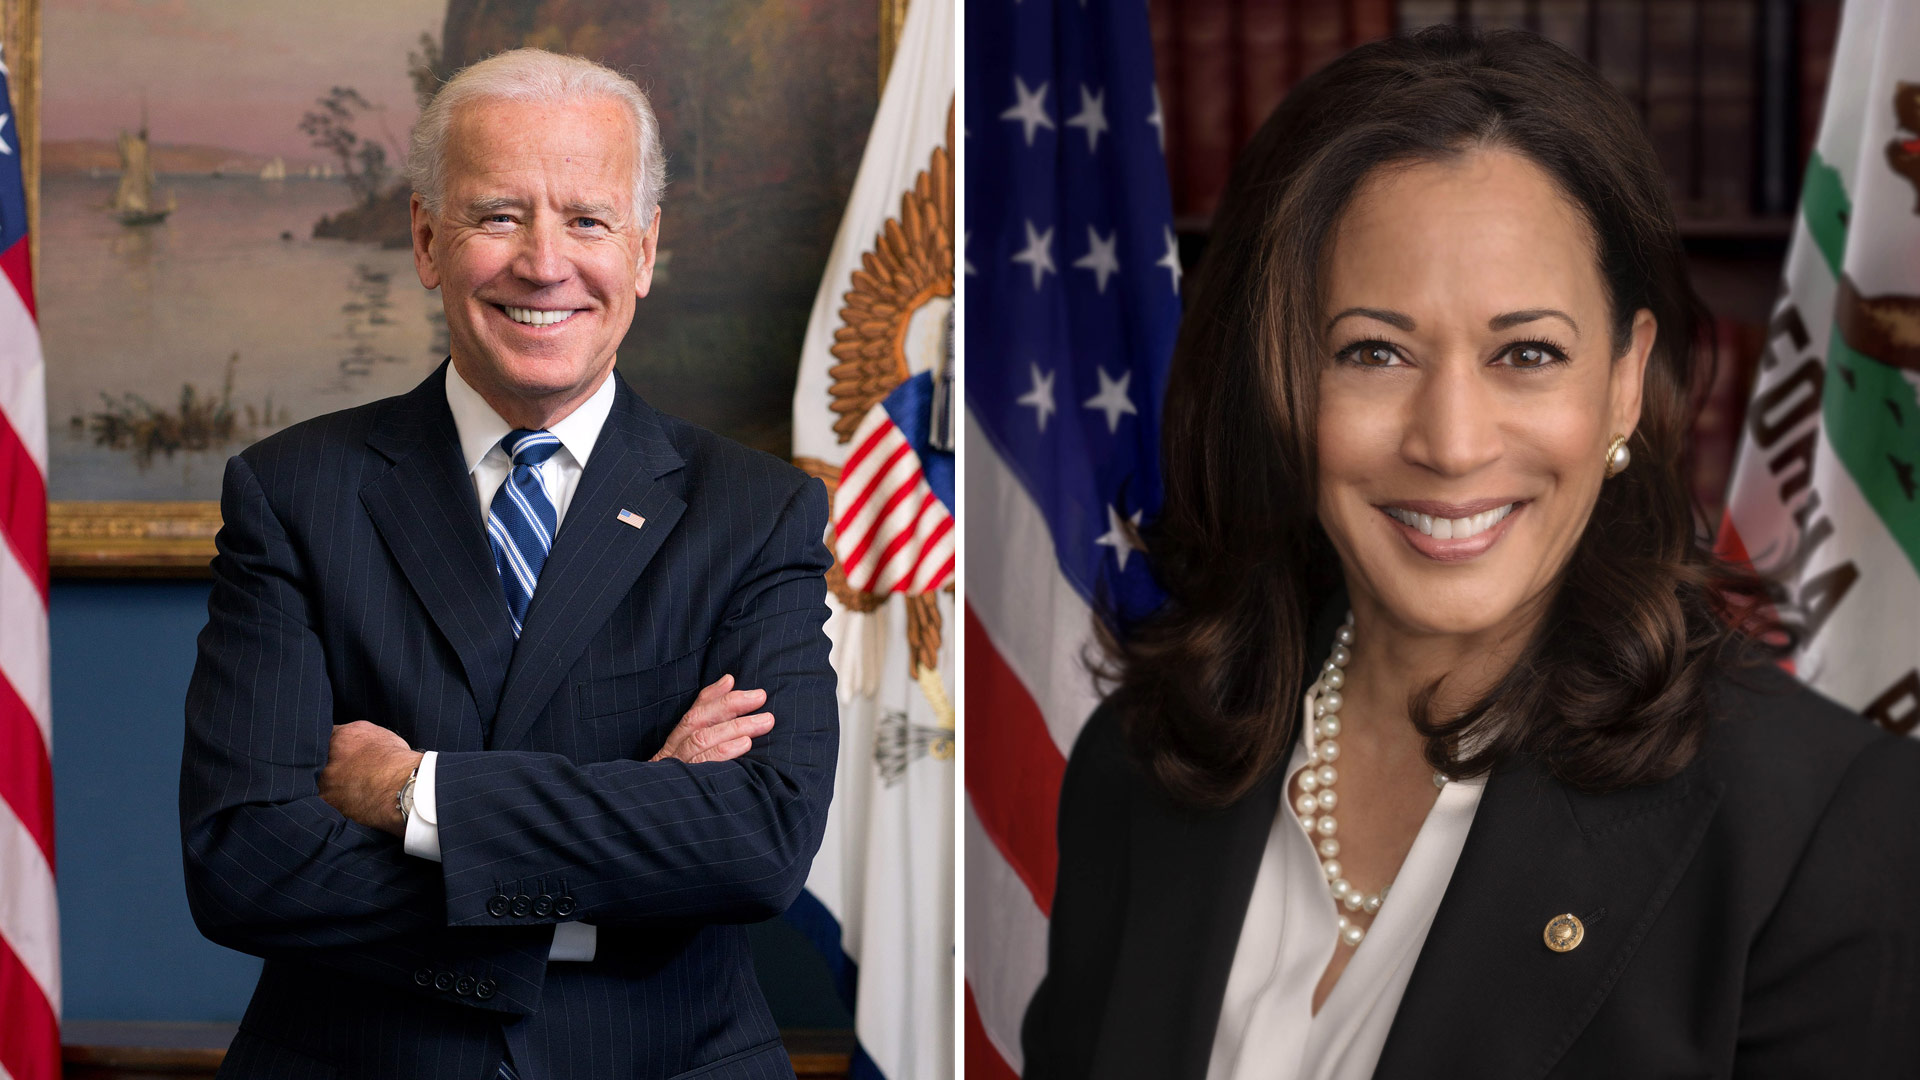 Democratic Presidential nominee Joe Biden (left) has selected Senator Kamala Harris (right) as his running mate.